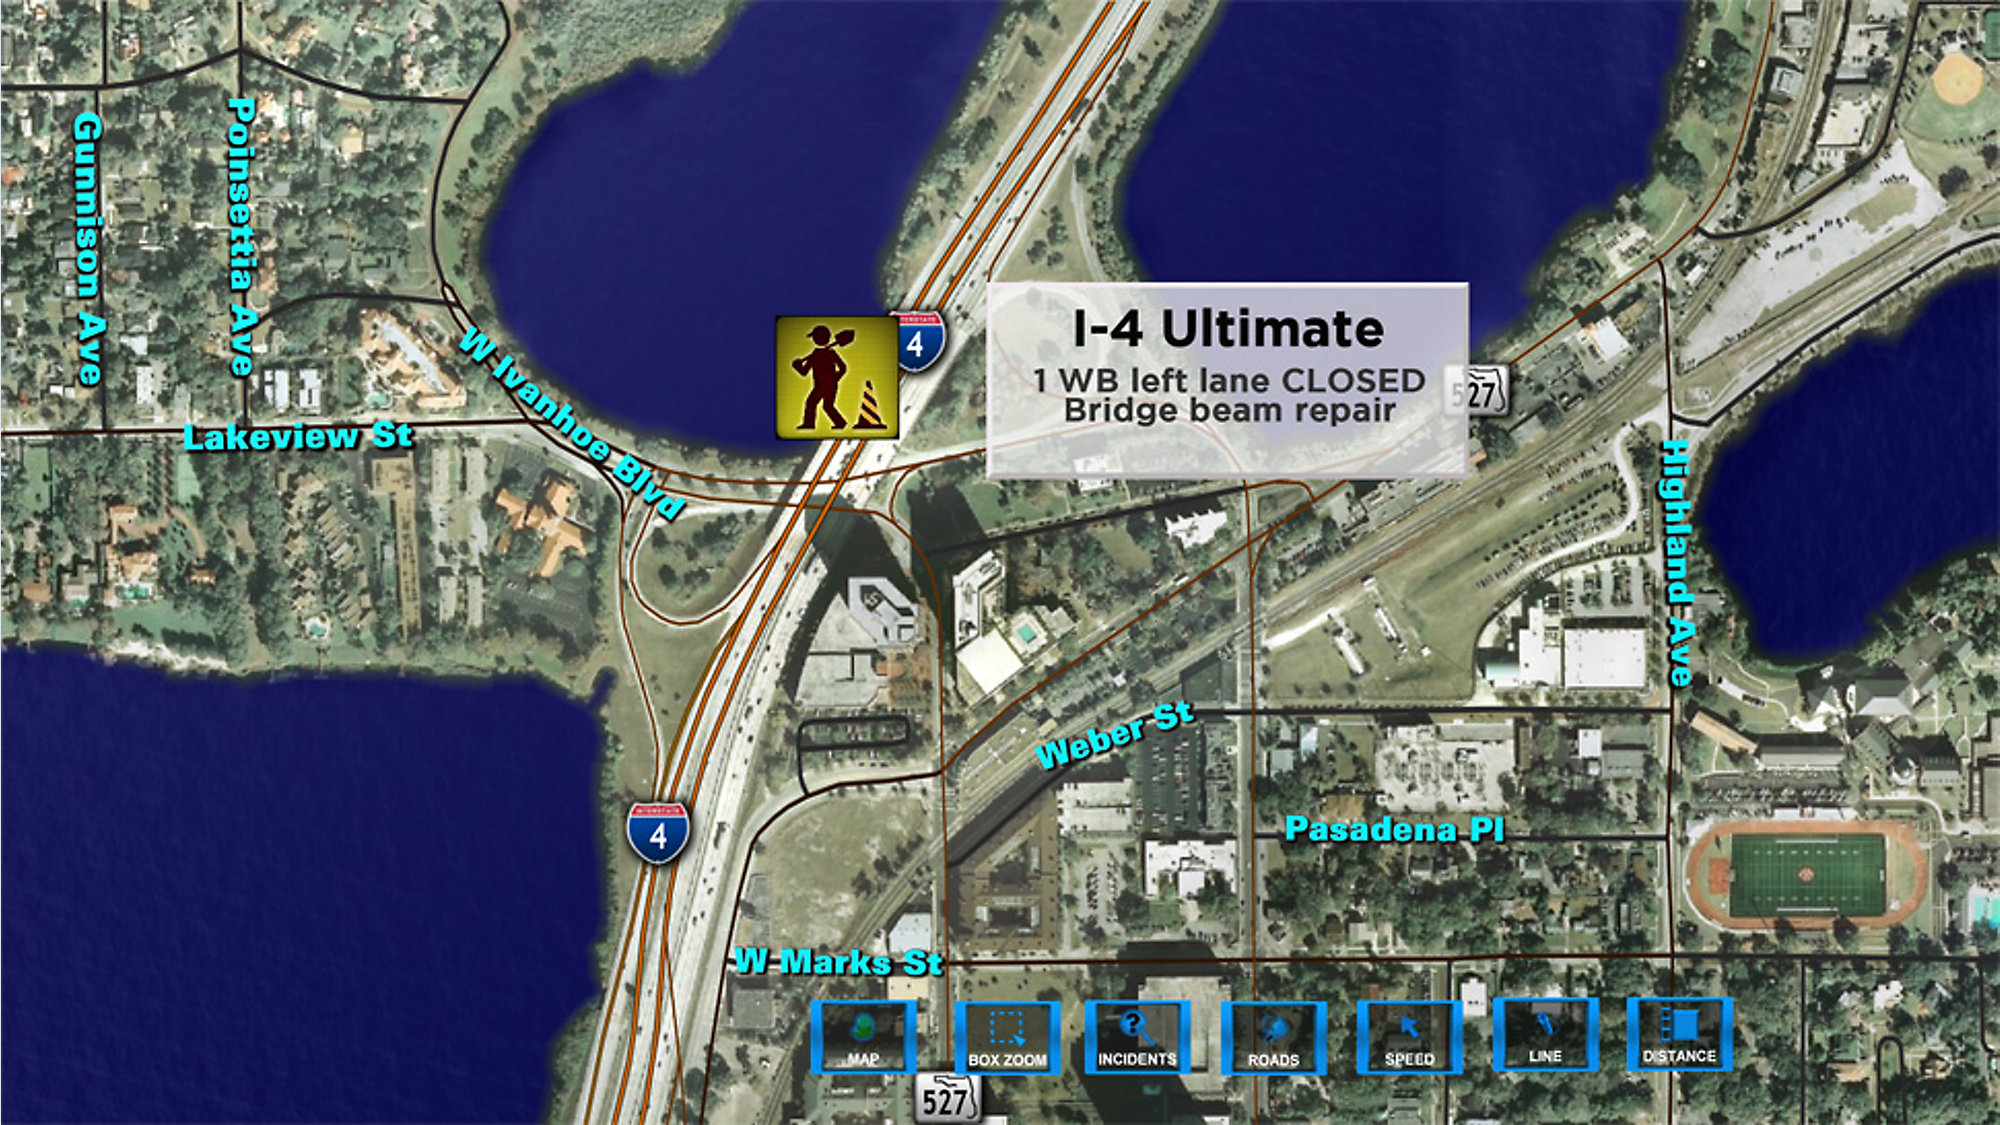 I-4 Ultimate | Central Florida Interstate 4 Project